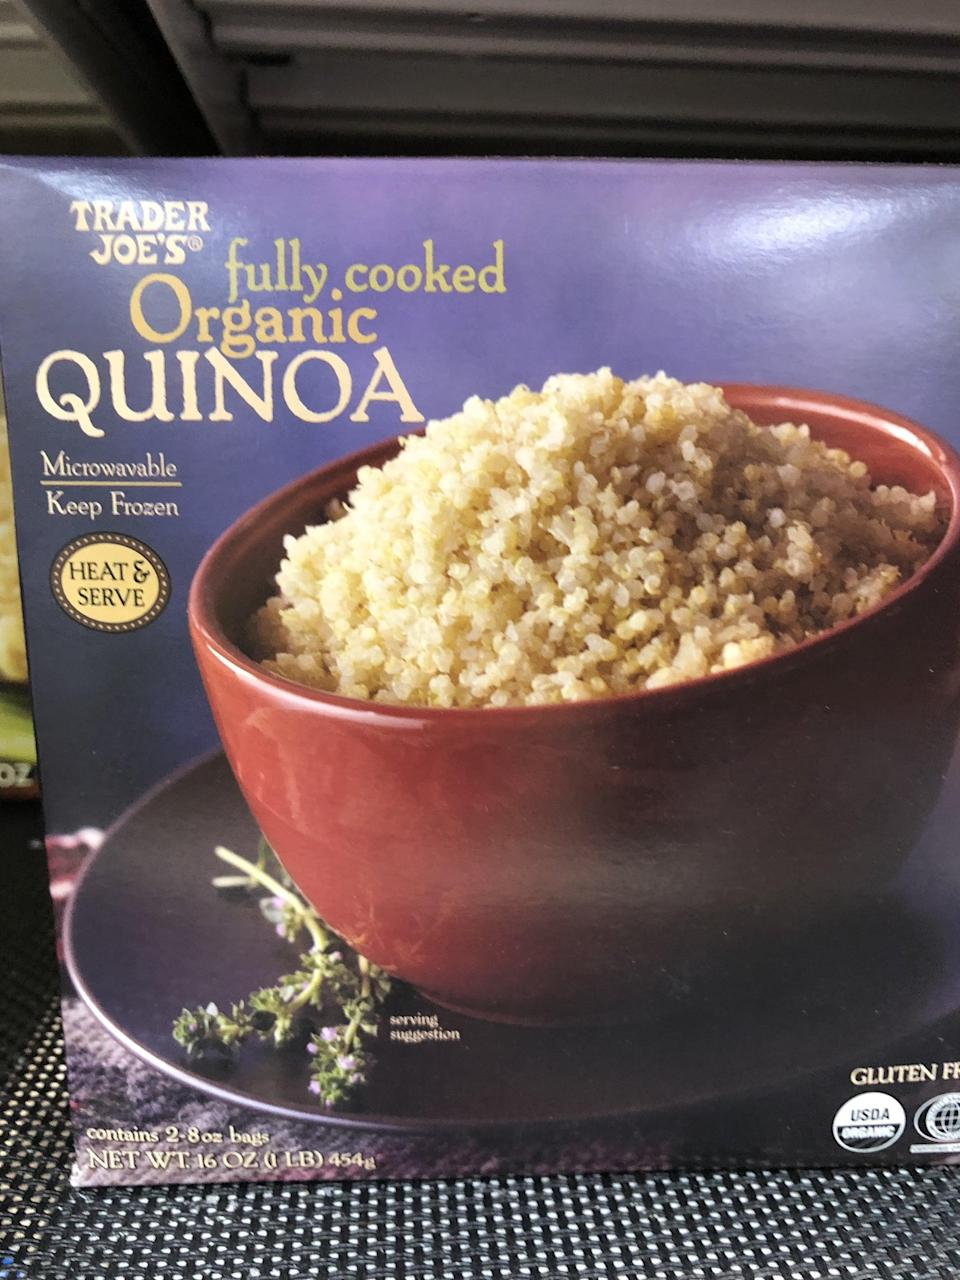 <p>Heat this quinoa up, and use it in place of oatmeal for a fruity, nutty, mapley breakfast.</p>